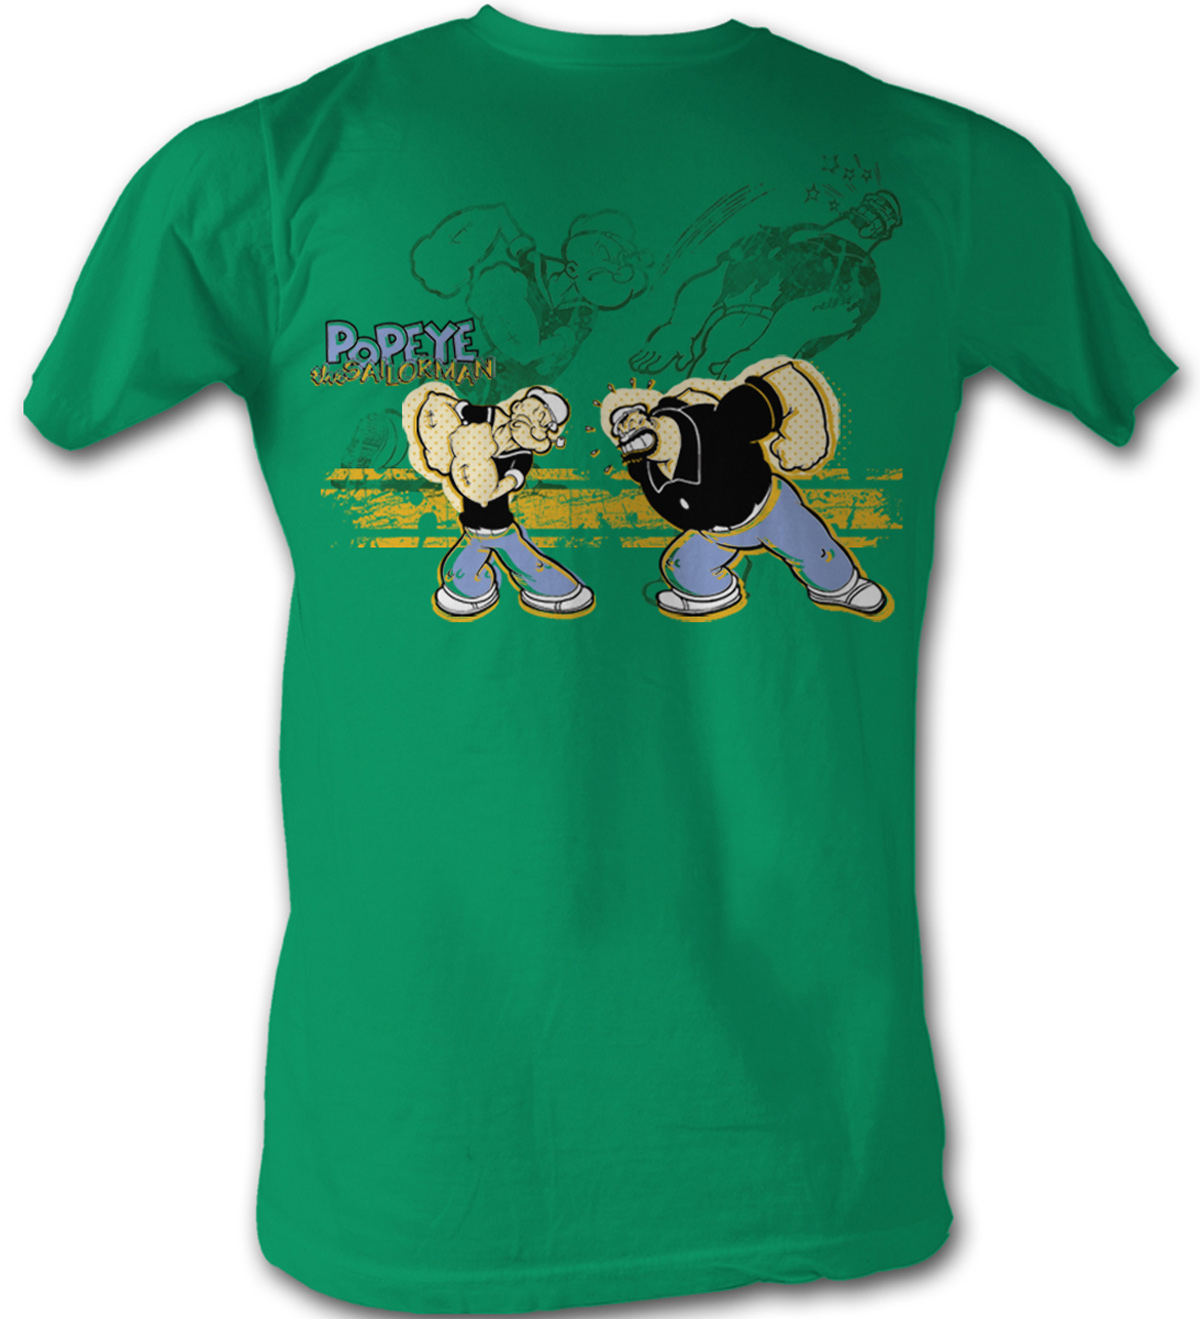 popeye t shirt popeye punch brutus adult kelly green tee. Black Bedroom Furniture Sets. Home Design Ideas